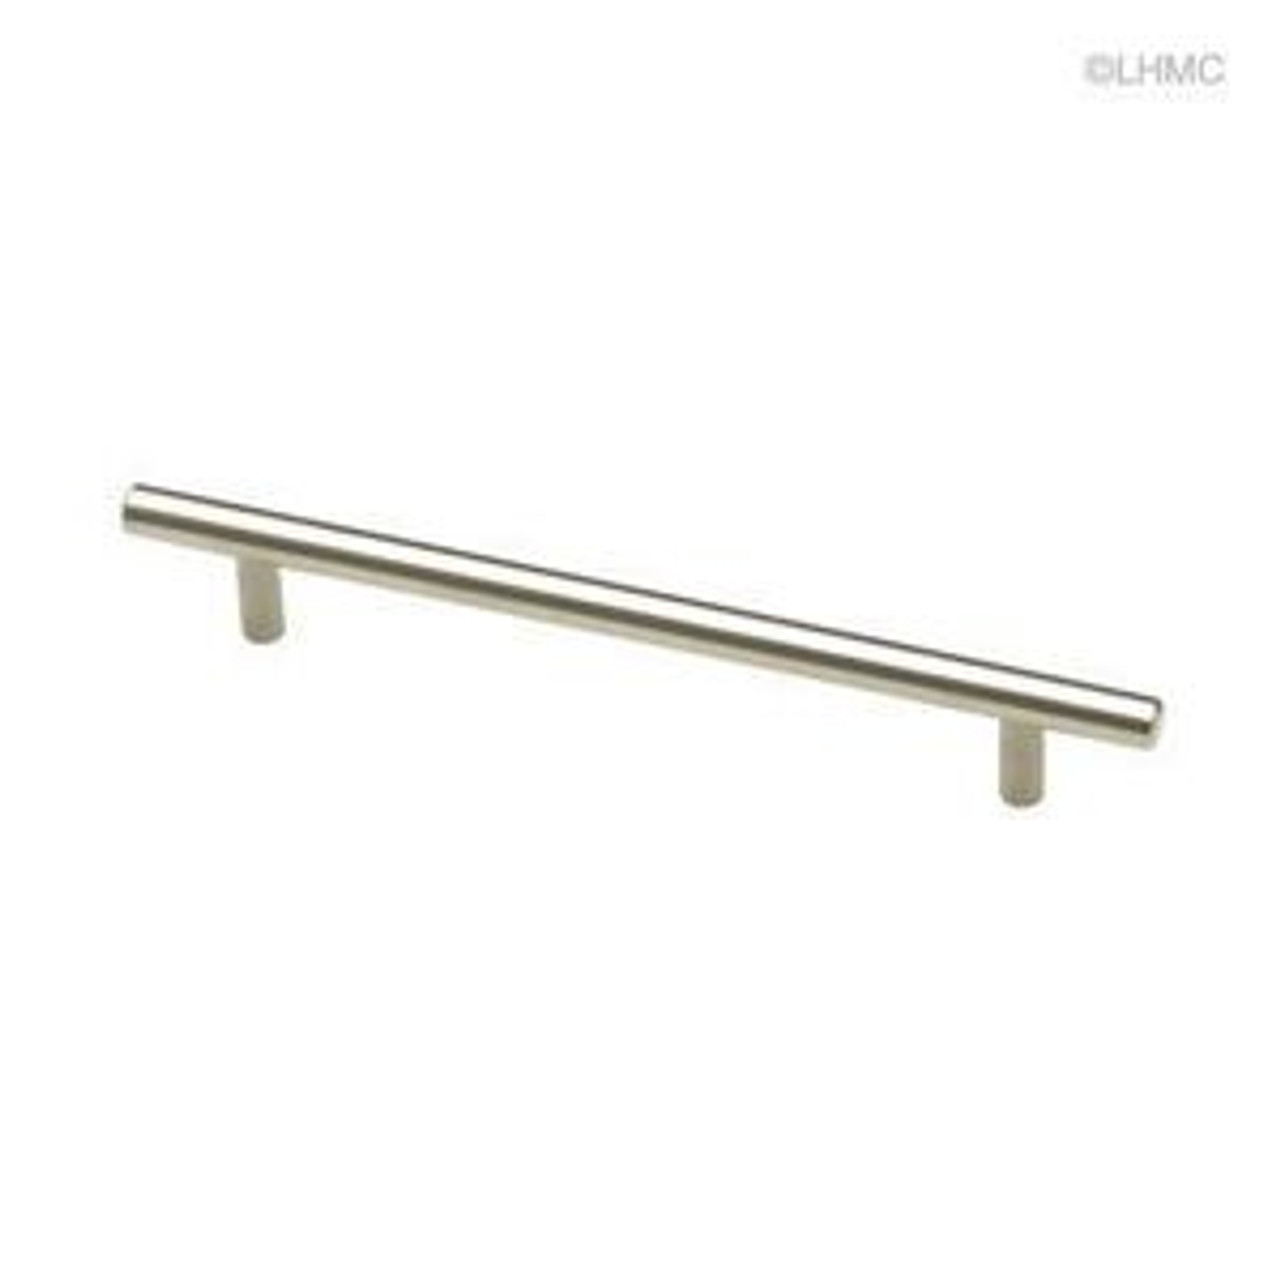 "9427086 Stainless Steel Bar Cabinet Drawer Pull Knob 6 1/4"" Centers"